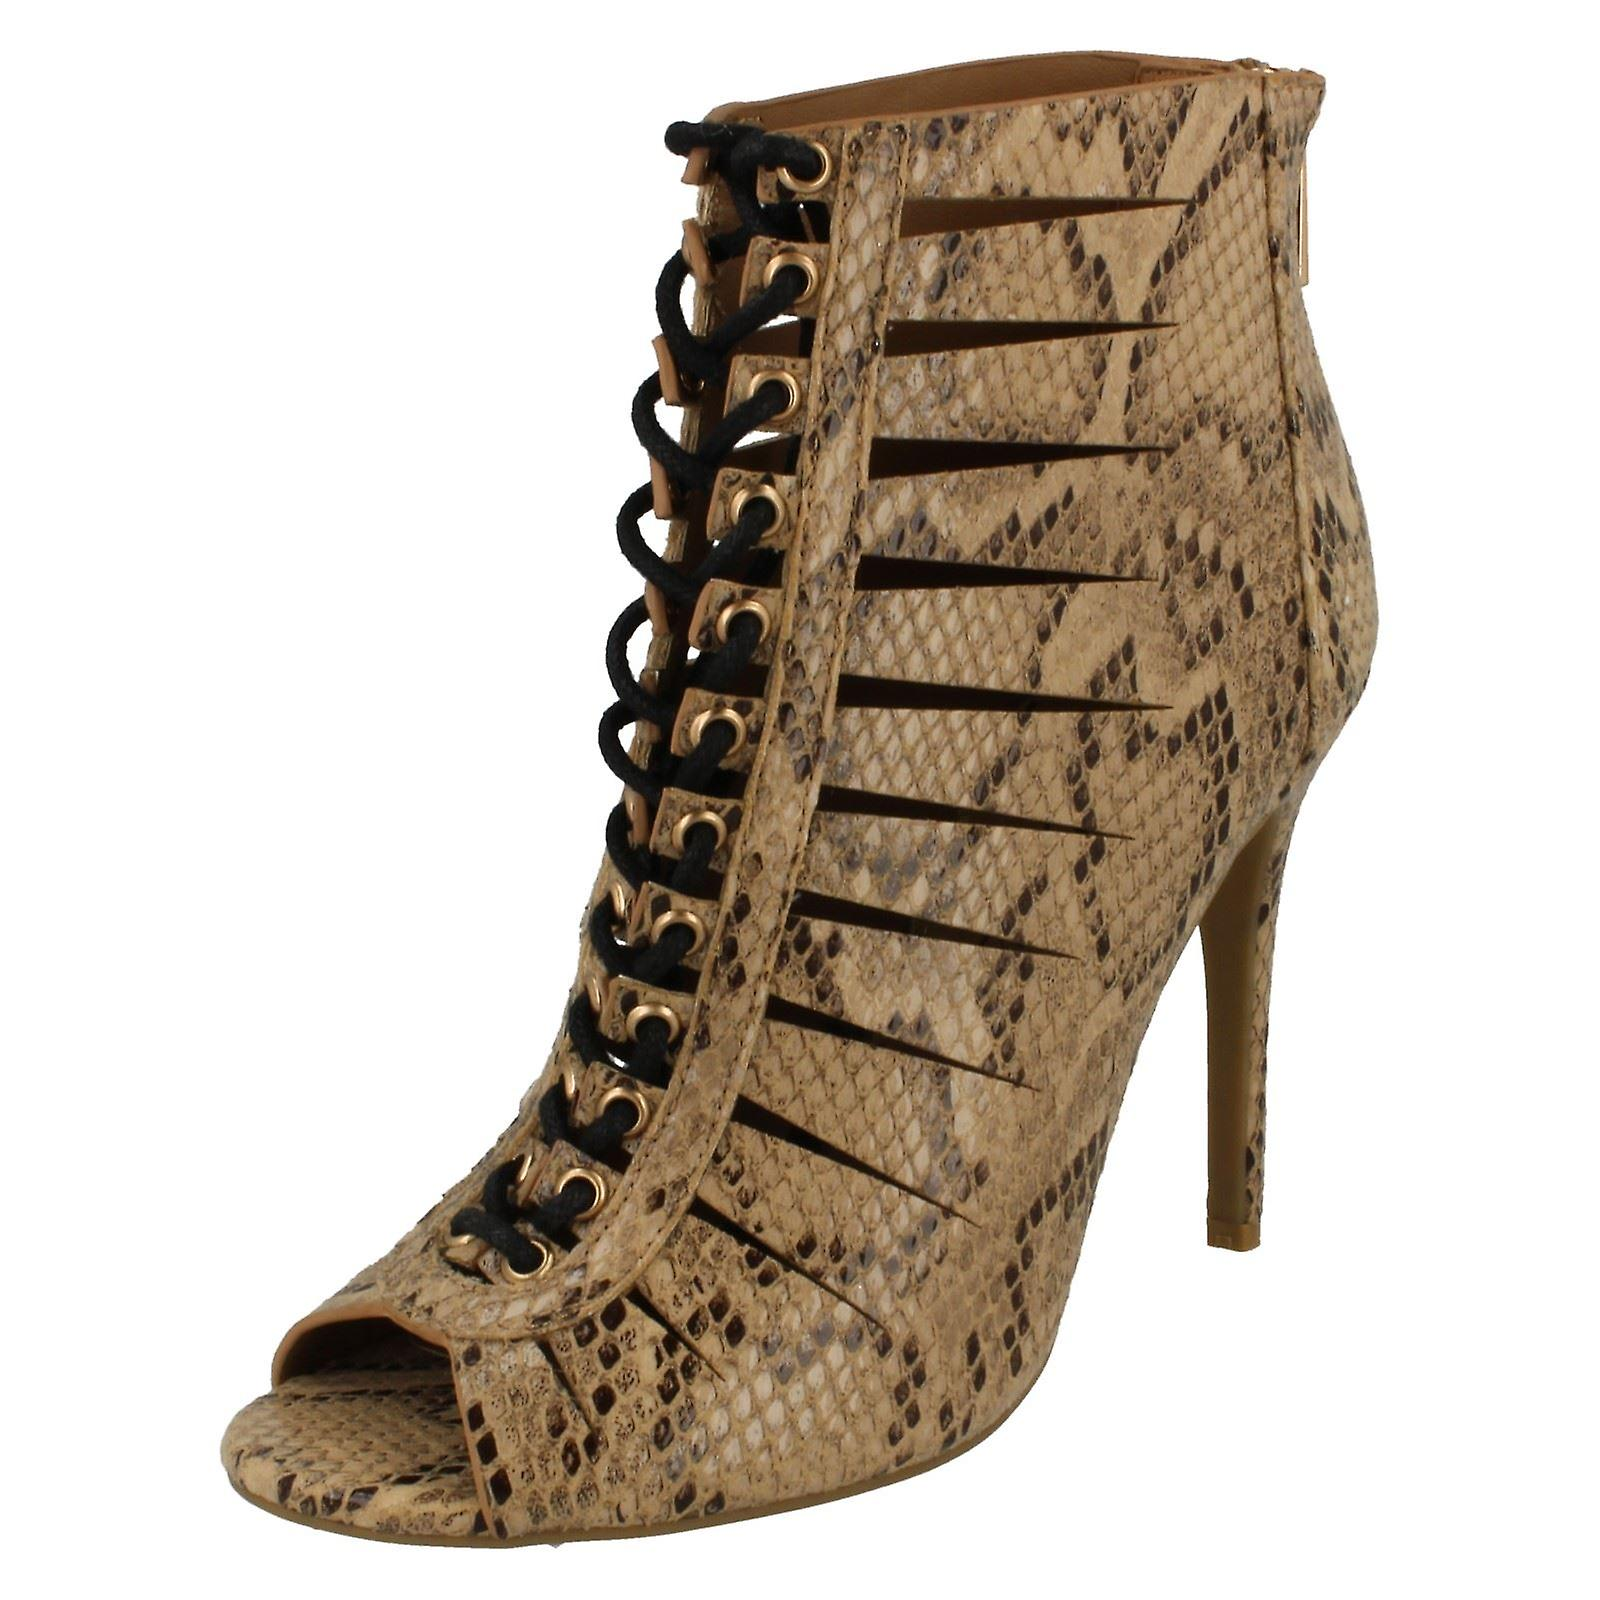 Le signore Anne Michelle alta tacco Lace Up Cut-Out sandalo F10507